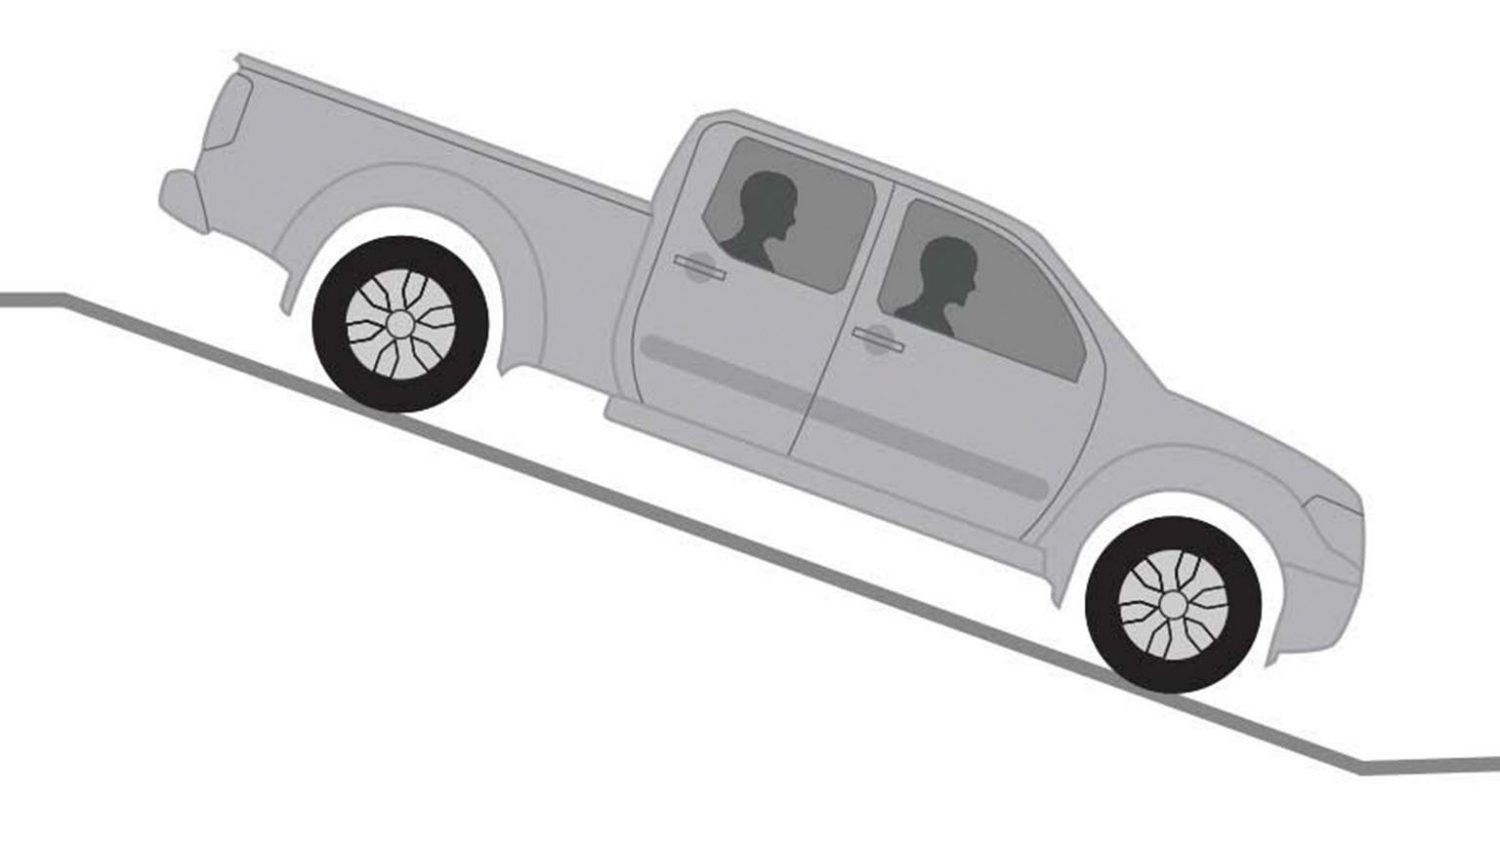 Nissan Navara hill descent control illustration